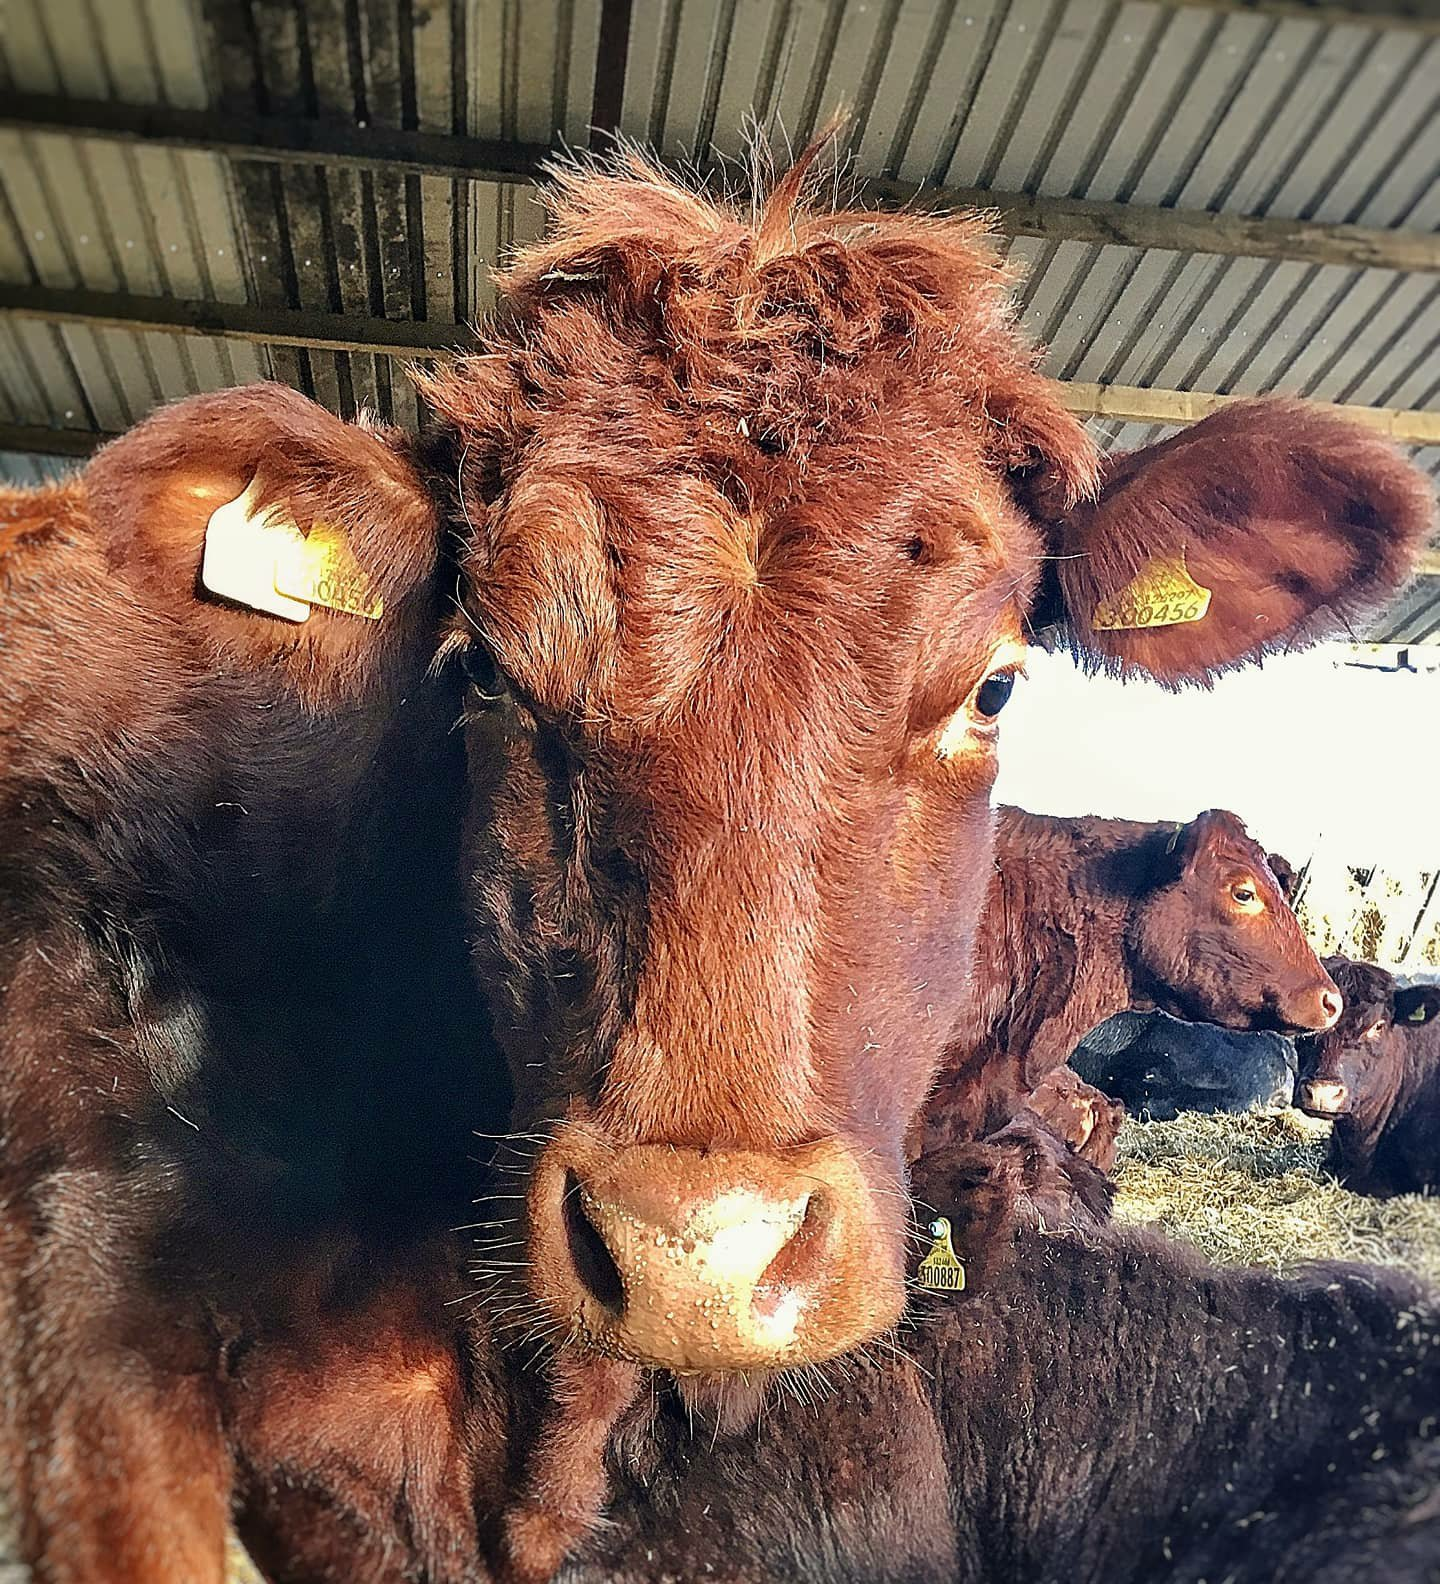 Head shot of an orange cow standing in a cow shed, her fringe is sticking out at all angles.